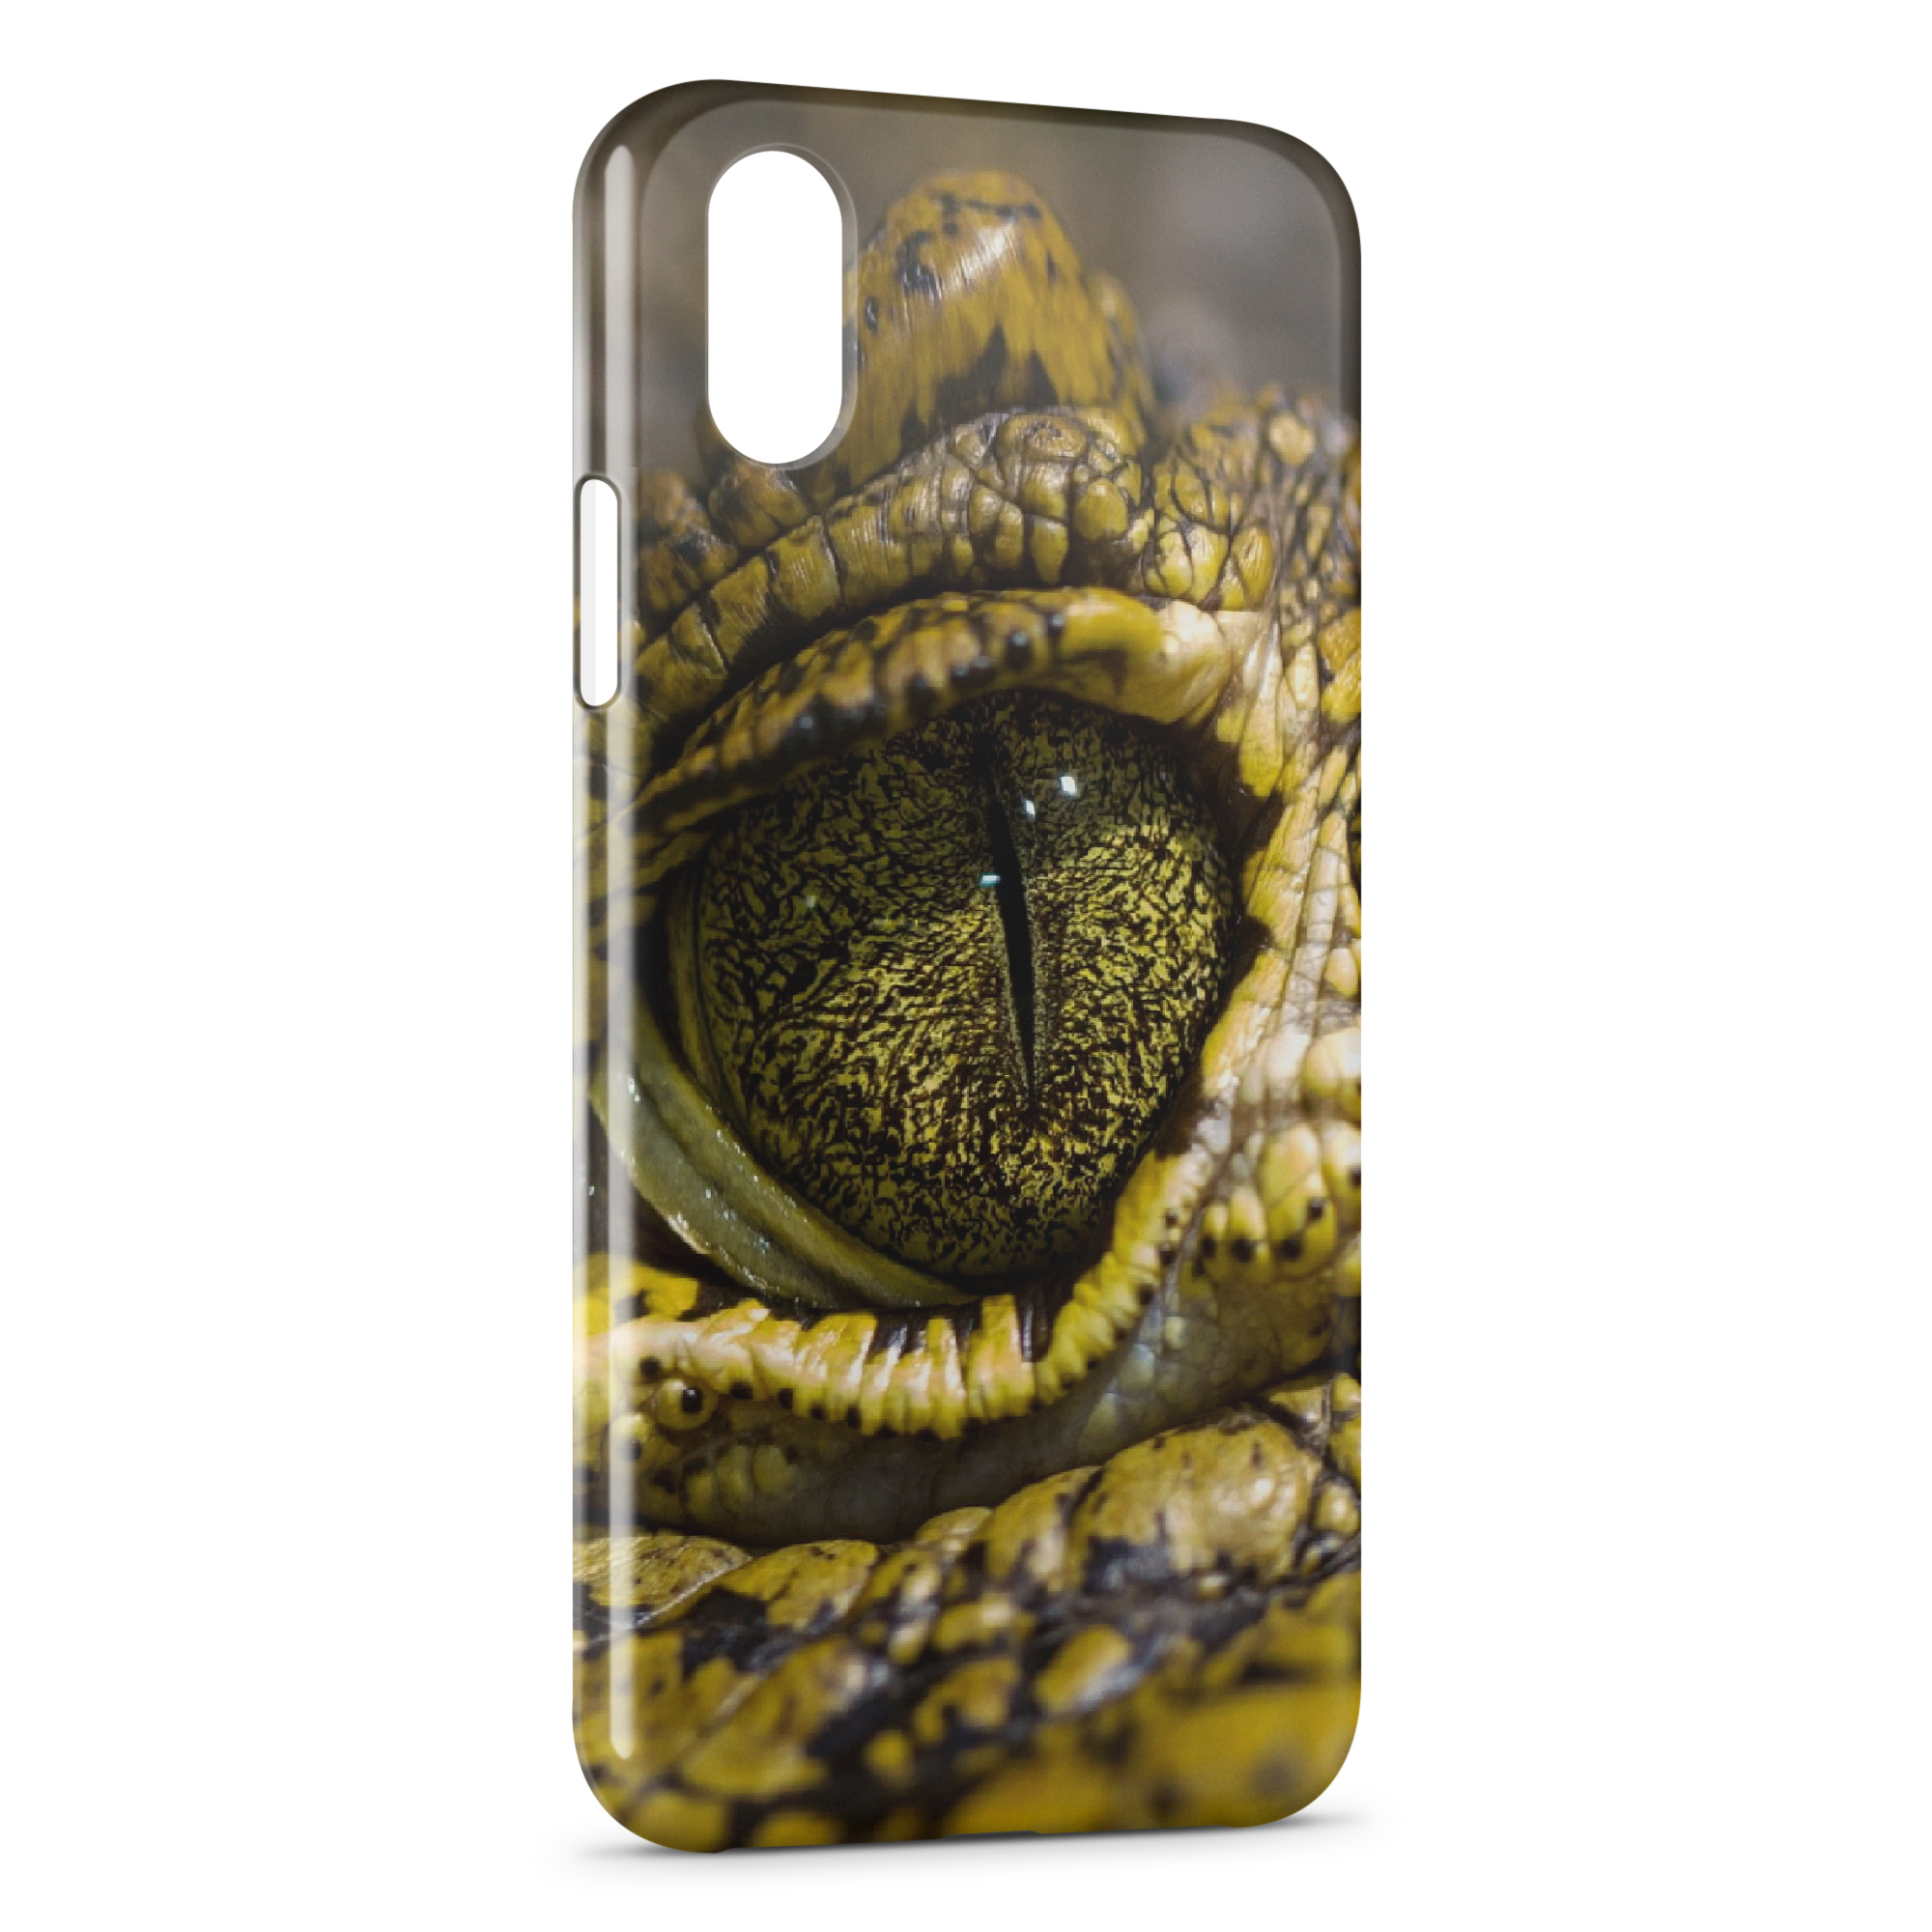 coque iphone xr snake